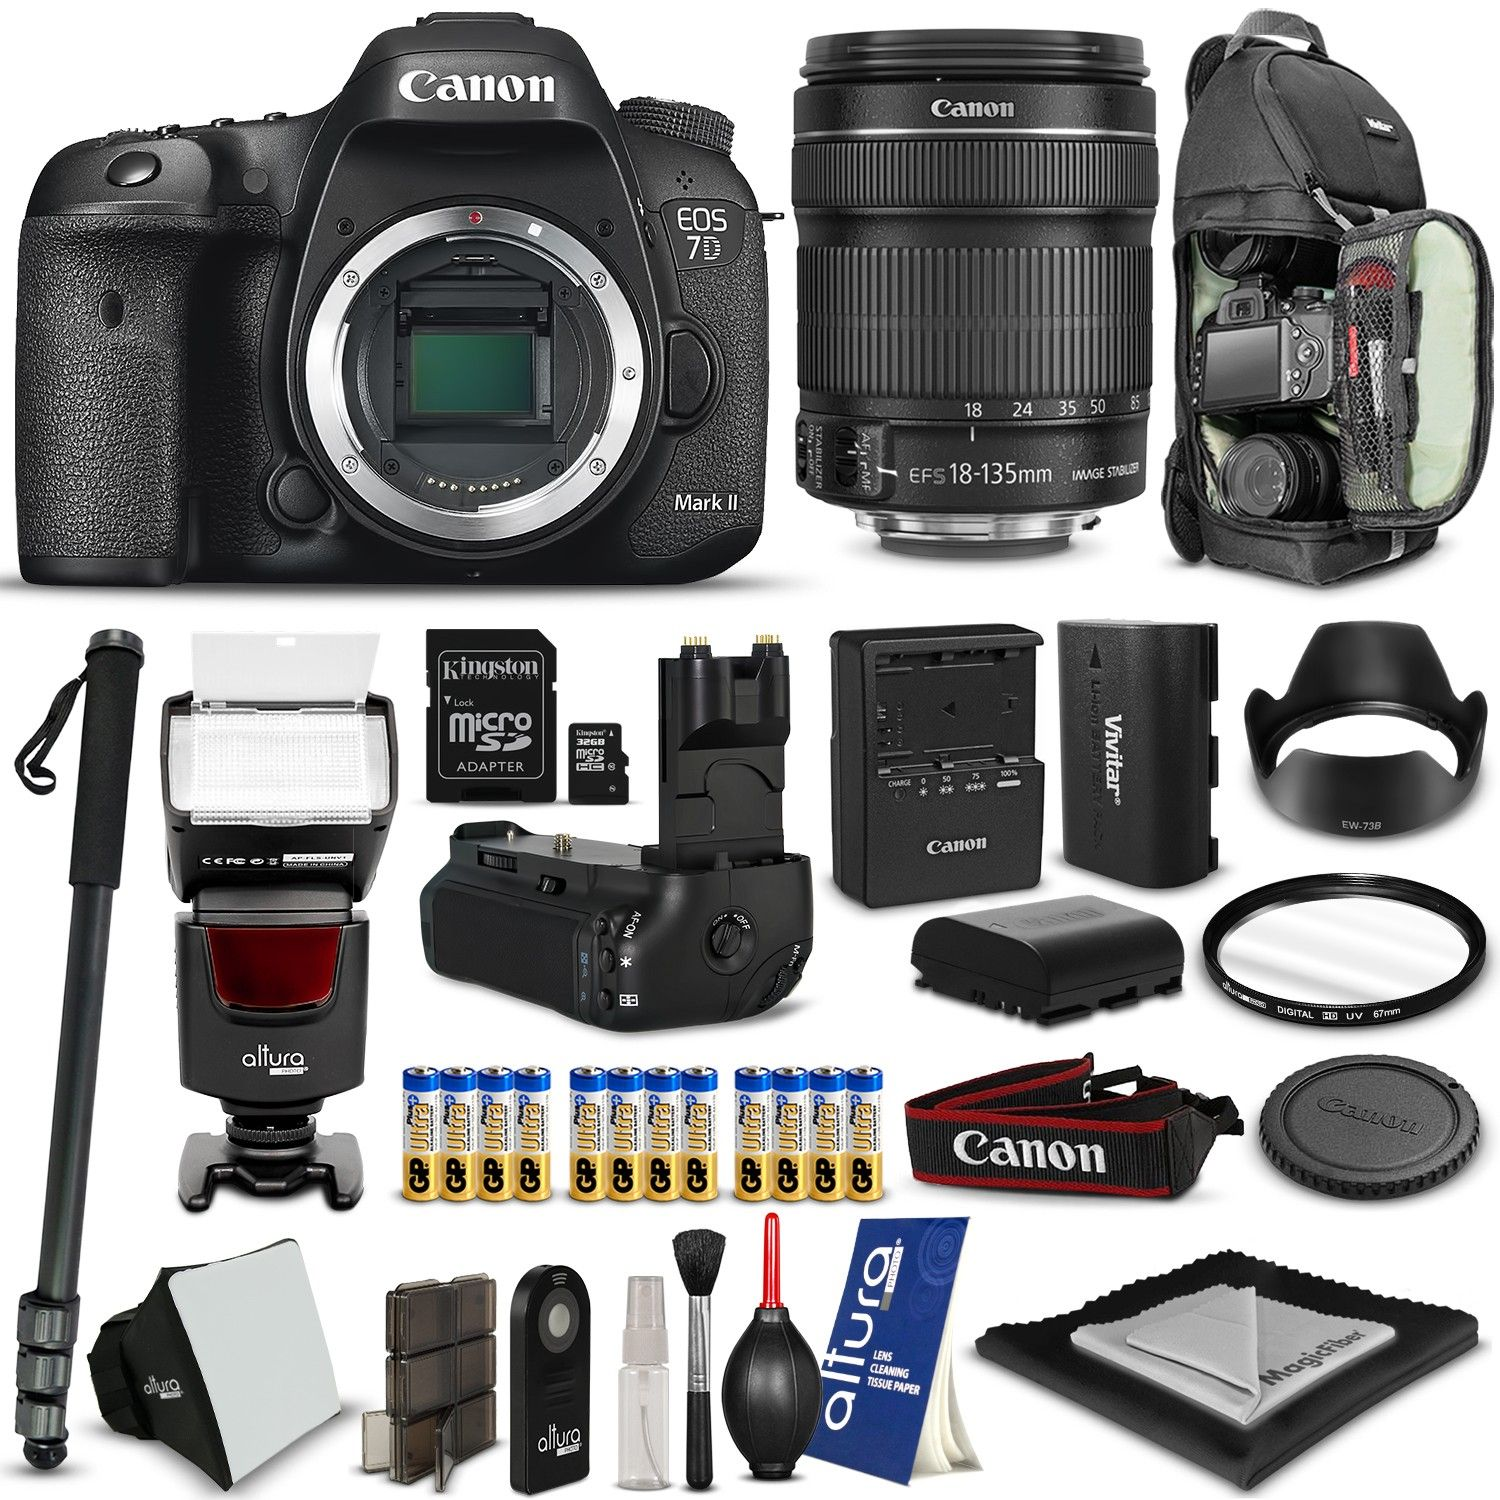 Canon Eos 7d Mark Ii 18 135mm Lens Free Backpack Amp Accessories Happy Deal Vivitar Battery Grip Camera Deals Canon Camera Canon Eos